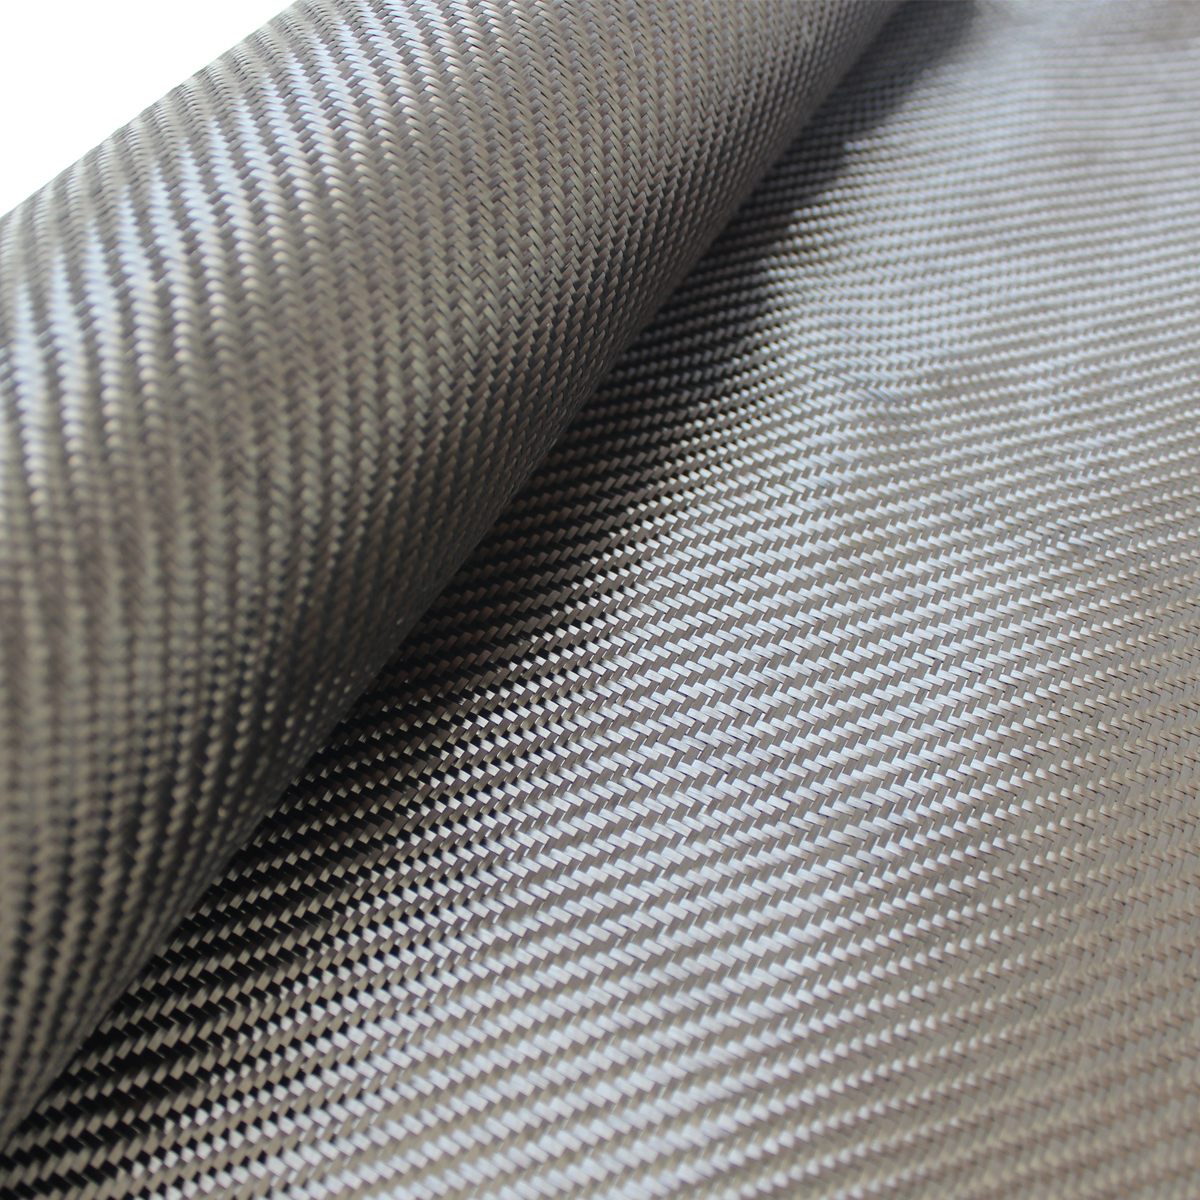 3k 200gsm twill weave carbon fiber fabric